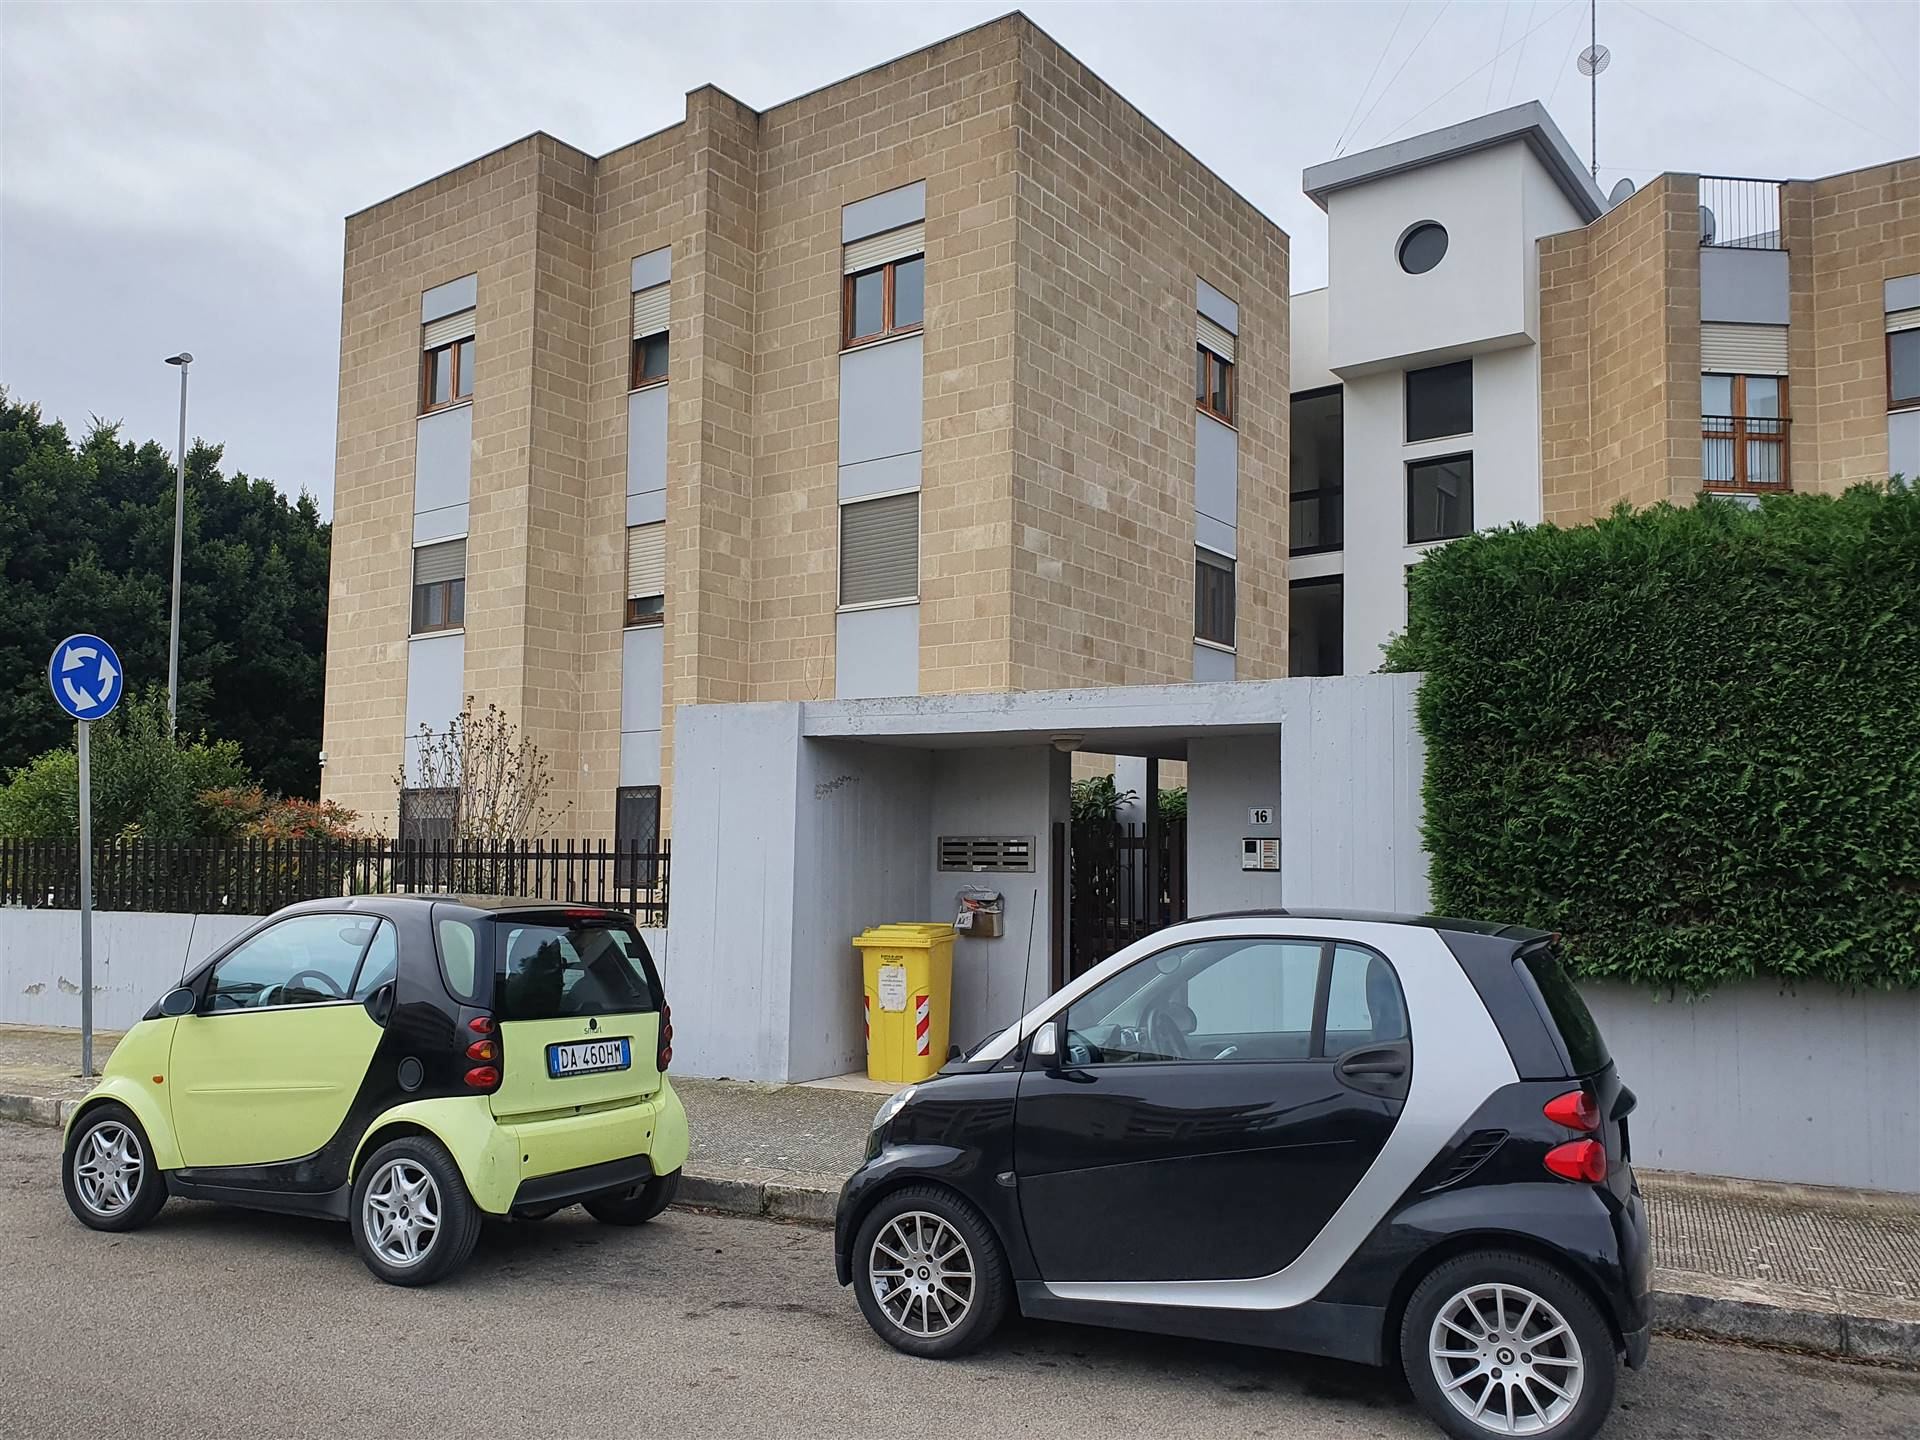 P. PARTIGIANI, LECCE, Apartment for rent, Good condition, Heating Individual heating system, Energetic class: C, placed at 1°, composed by: 3 Rooms,